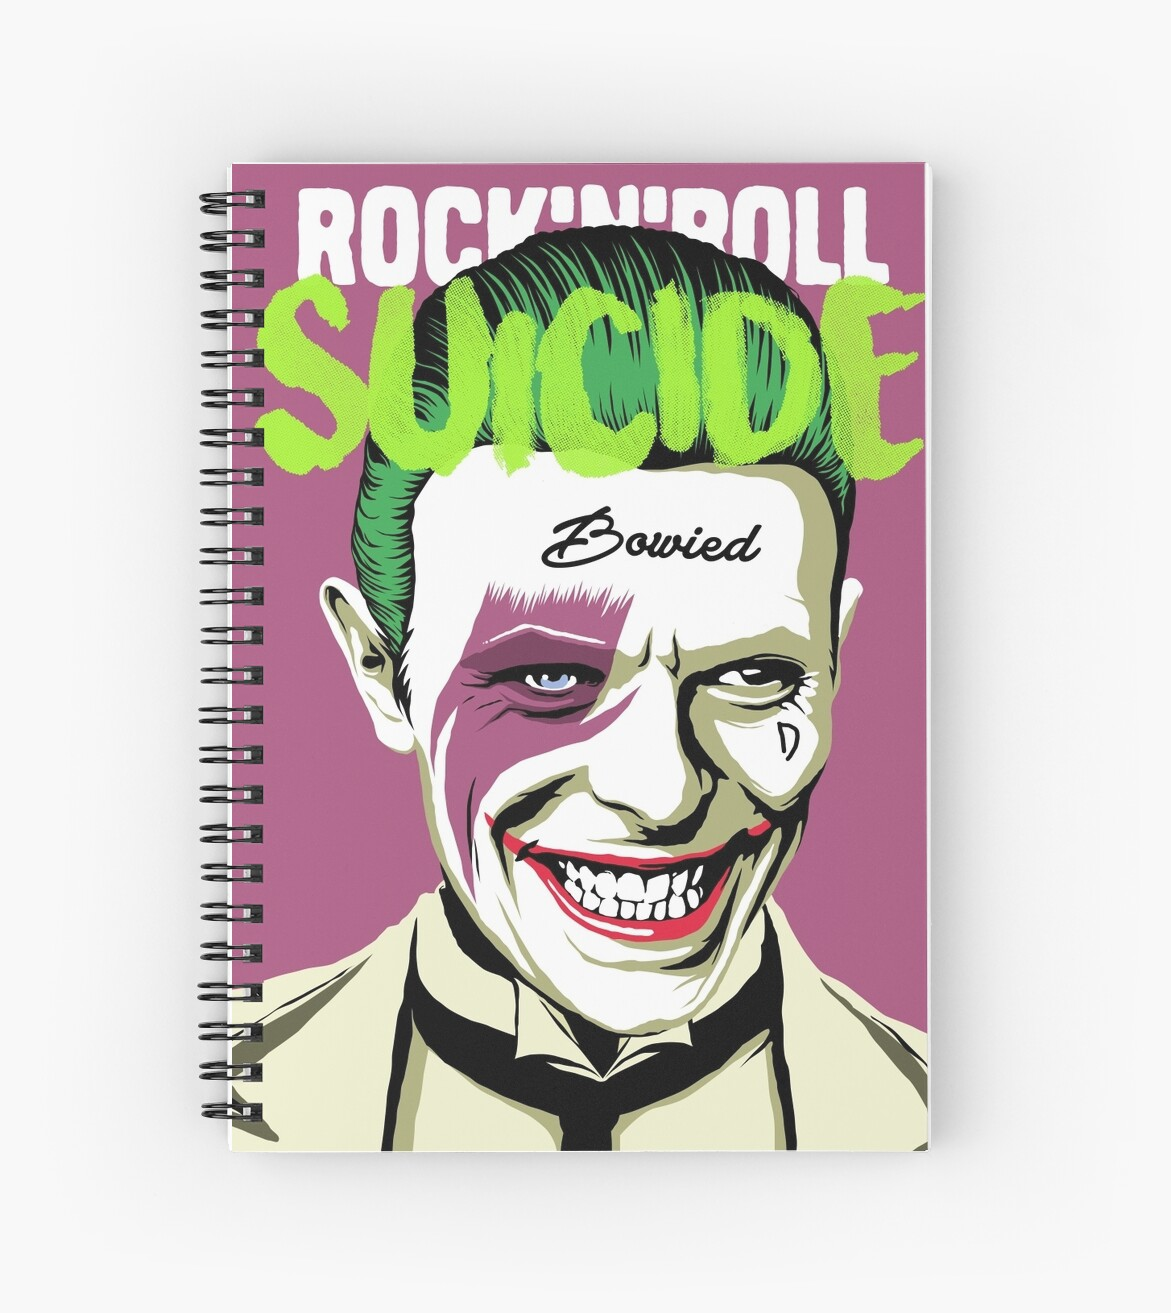 Rock Suicide by butcherbilly